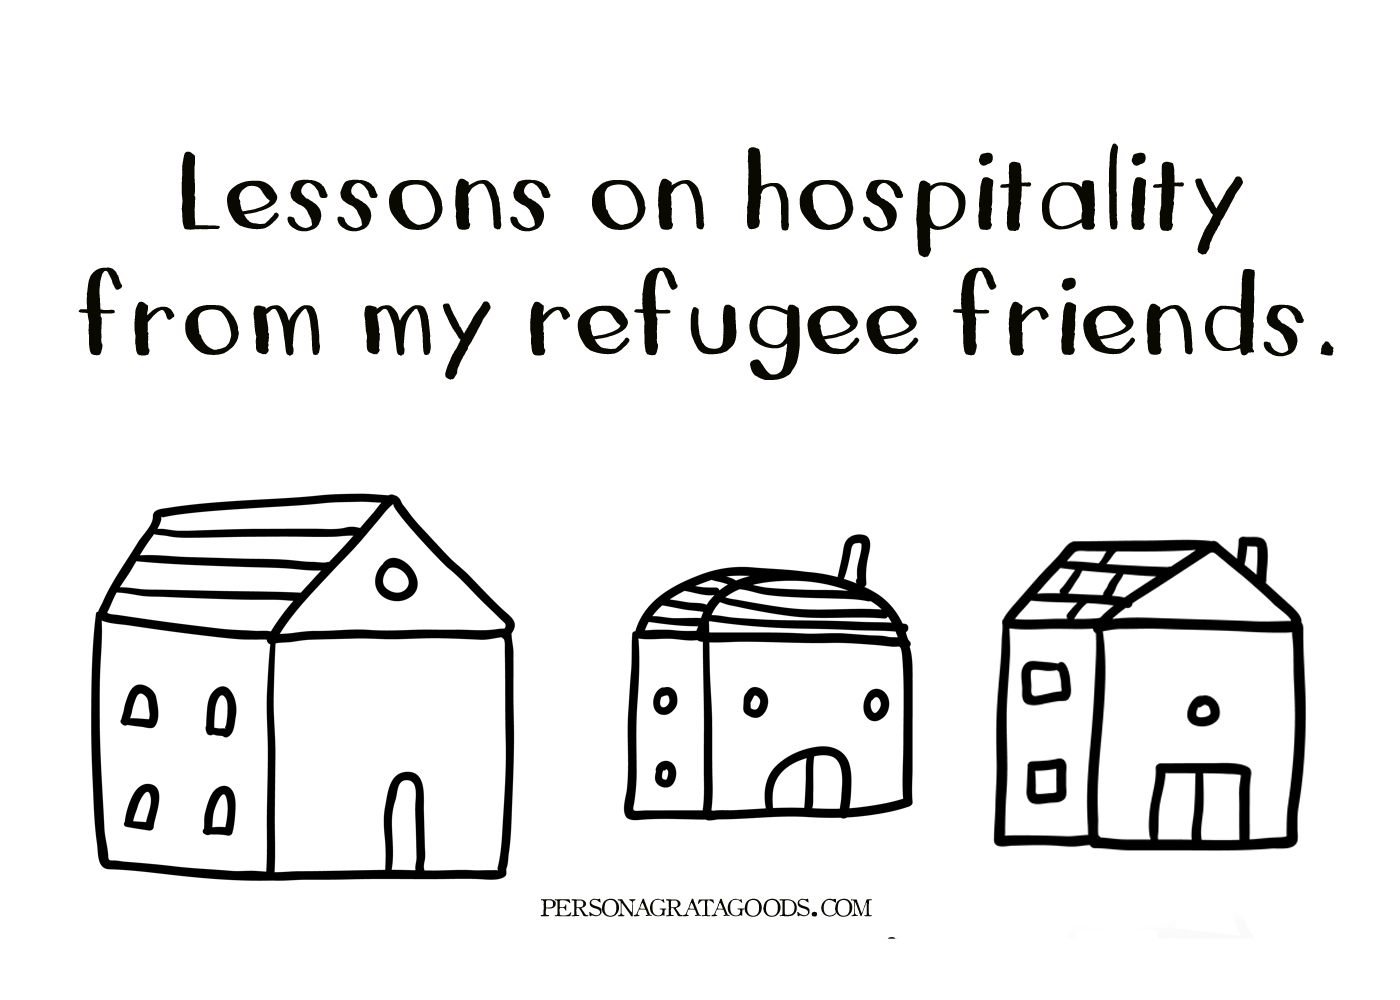 Hospitality Lessons from Refugees